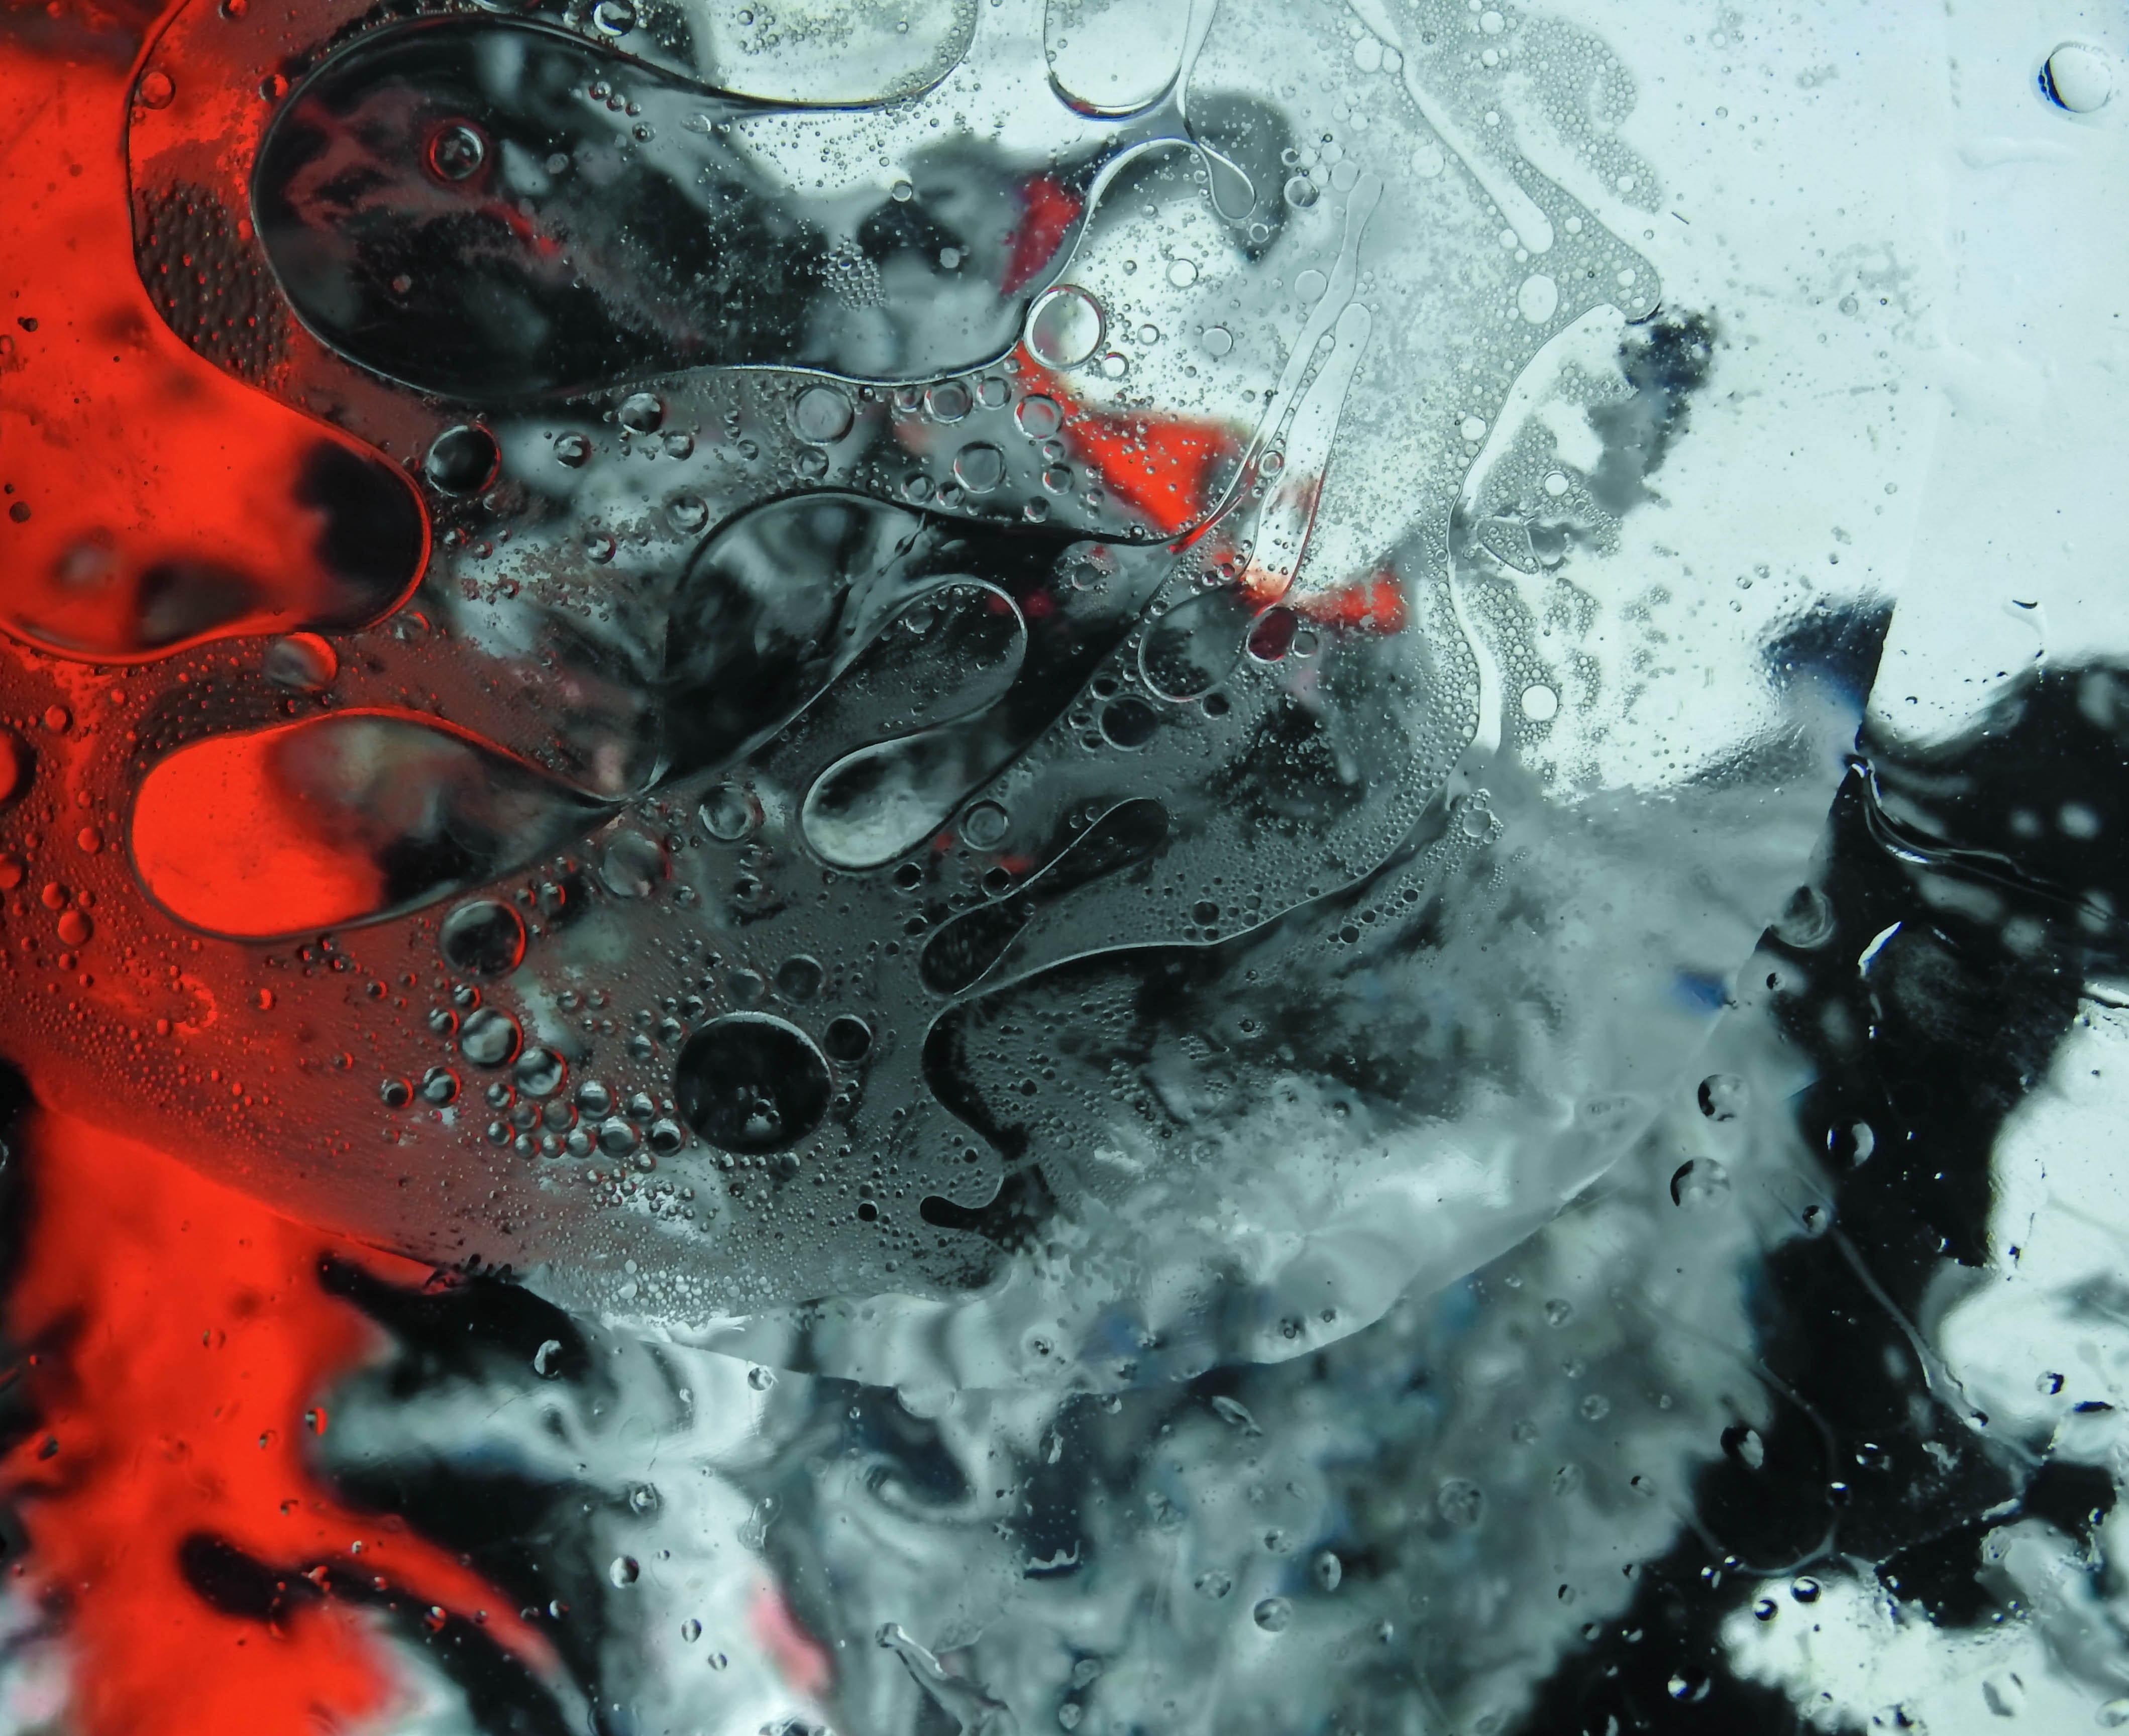 77662 download wallpaper Abstract, Divorces, Liquid, Bubbles screensavers and pictures for free